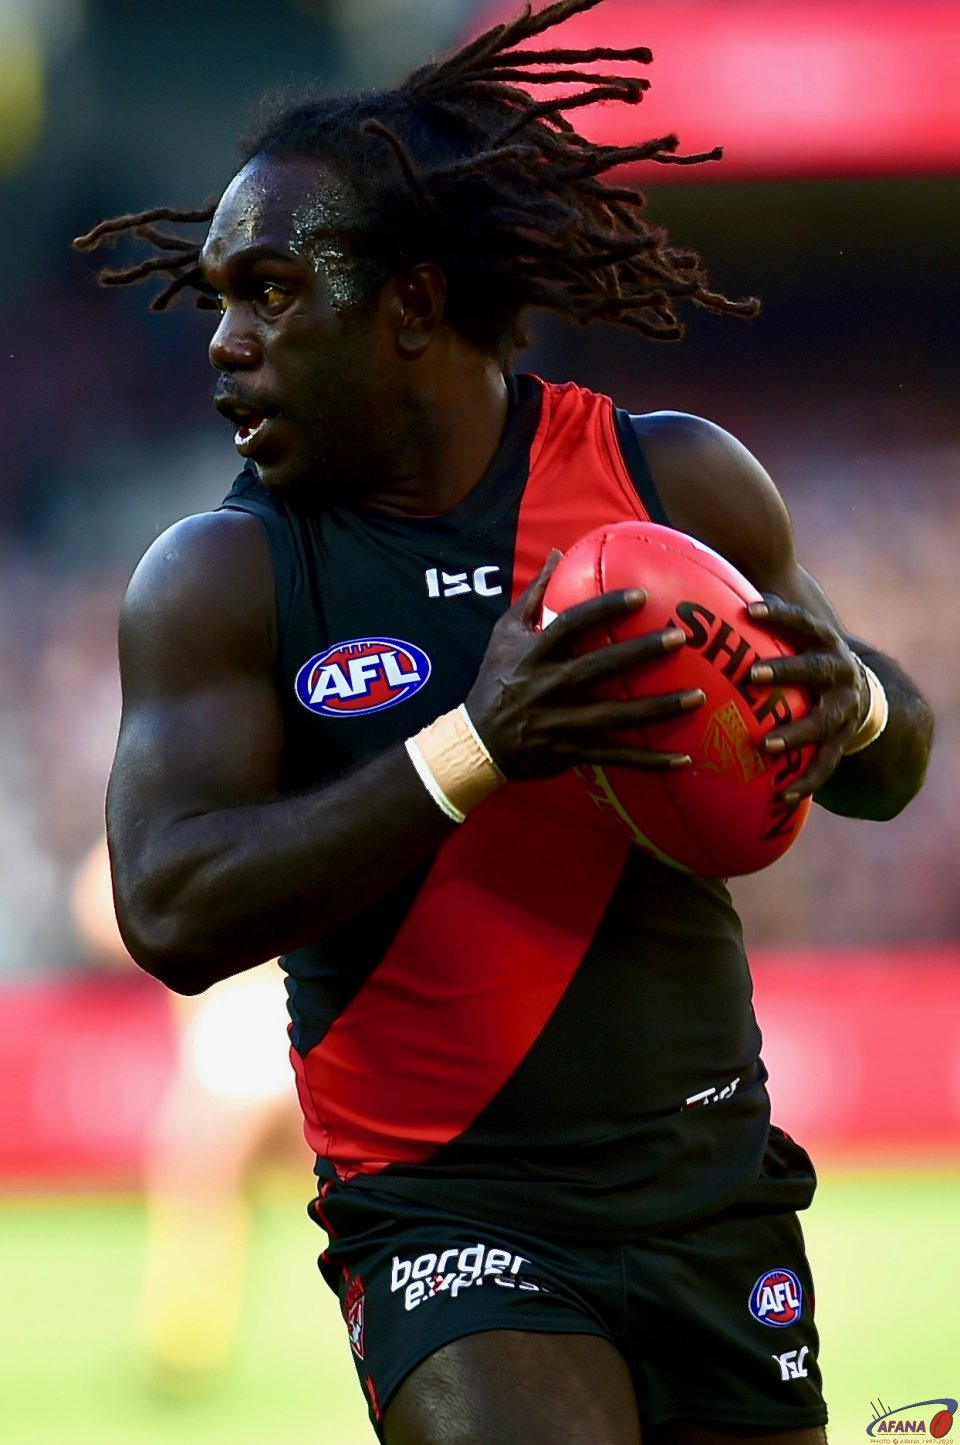 Anthony McDonald-Tipungwuti has a run on the wing.